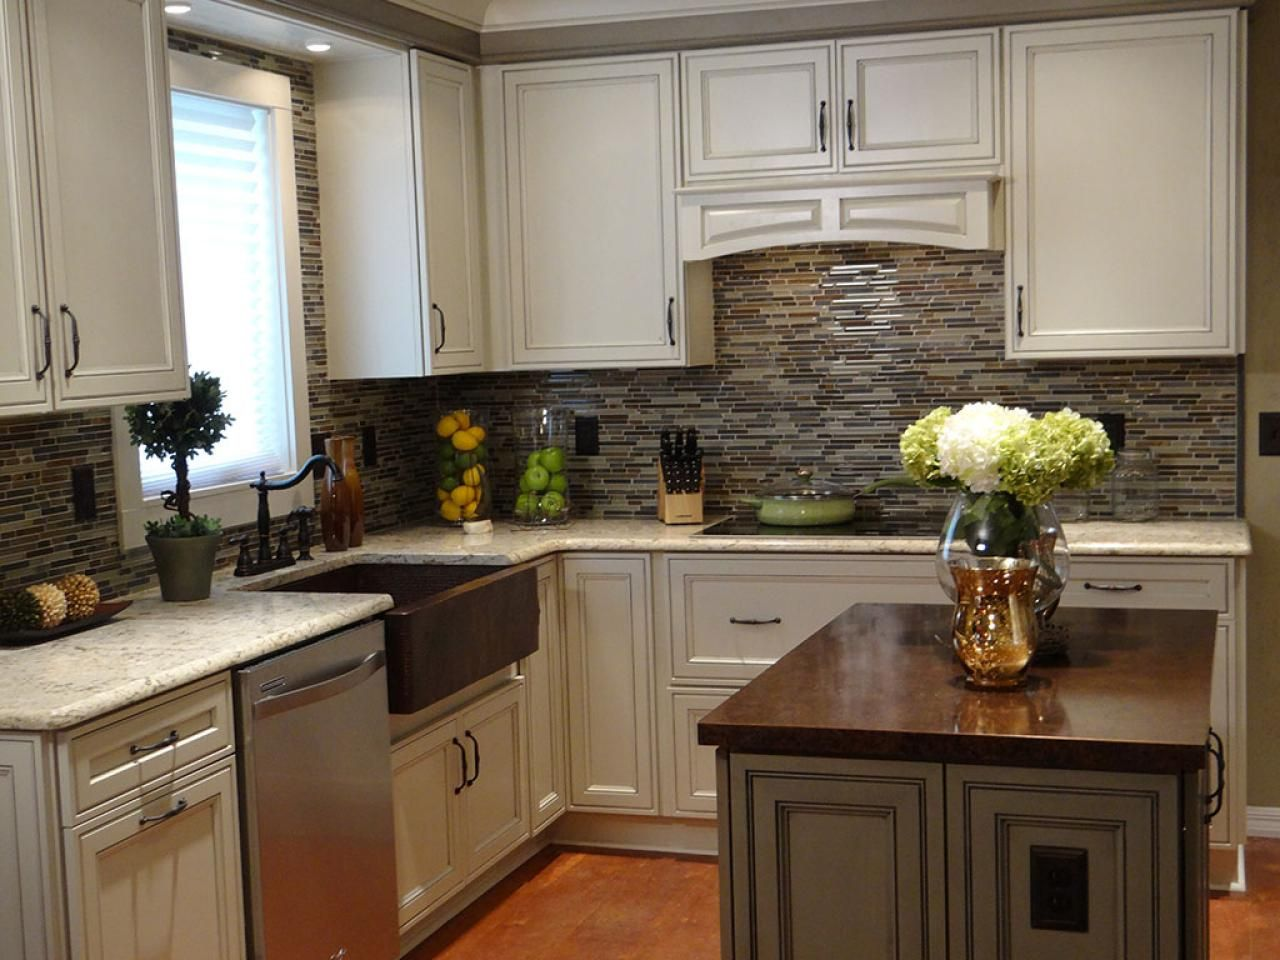 25 Kitchen Layouts Onsmall Marble. Kitchen Cabinet Islands Designs. Light Cherry Kitchen Cabinets Cream Island Butcher Block. Large Kitchen with Custom Hood Features Large Enkeboll Corbels On